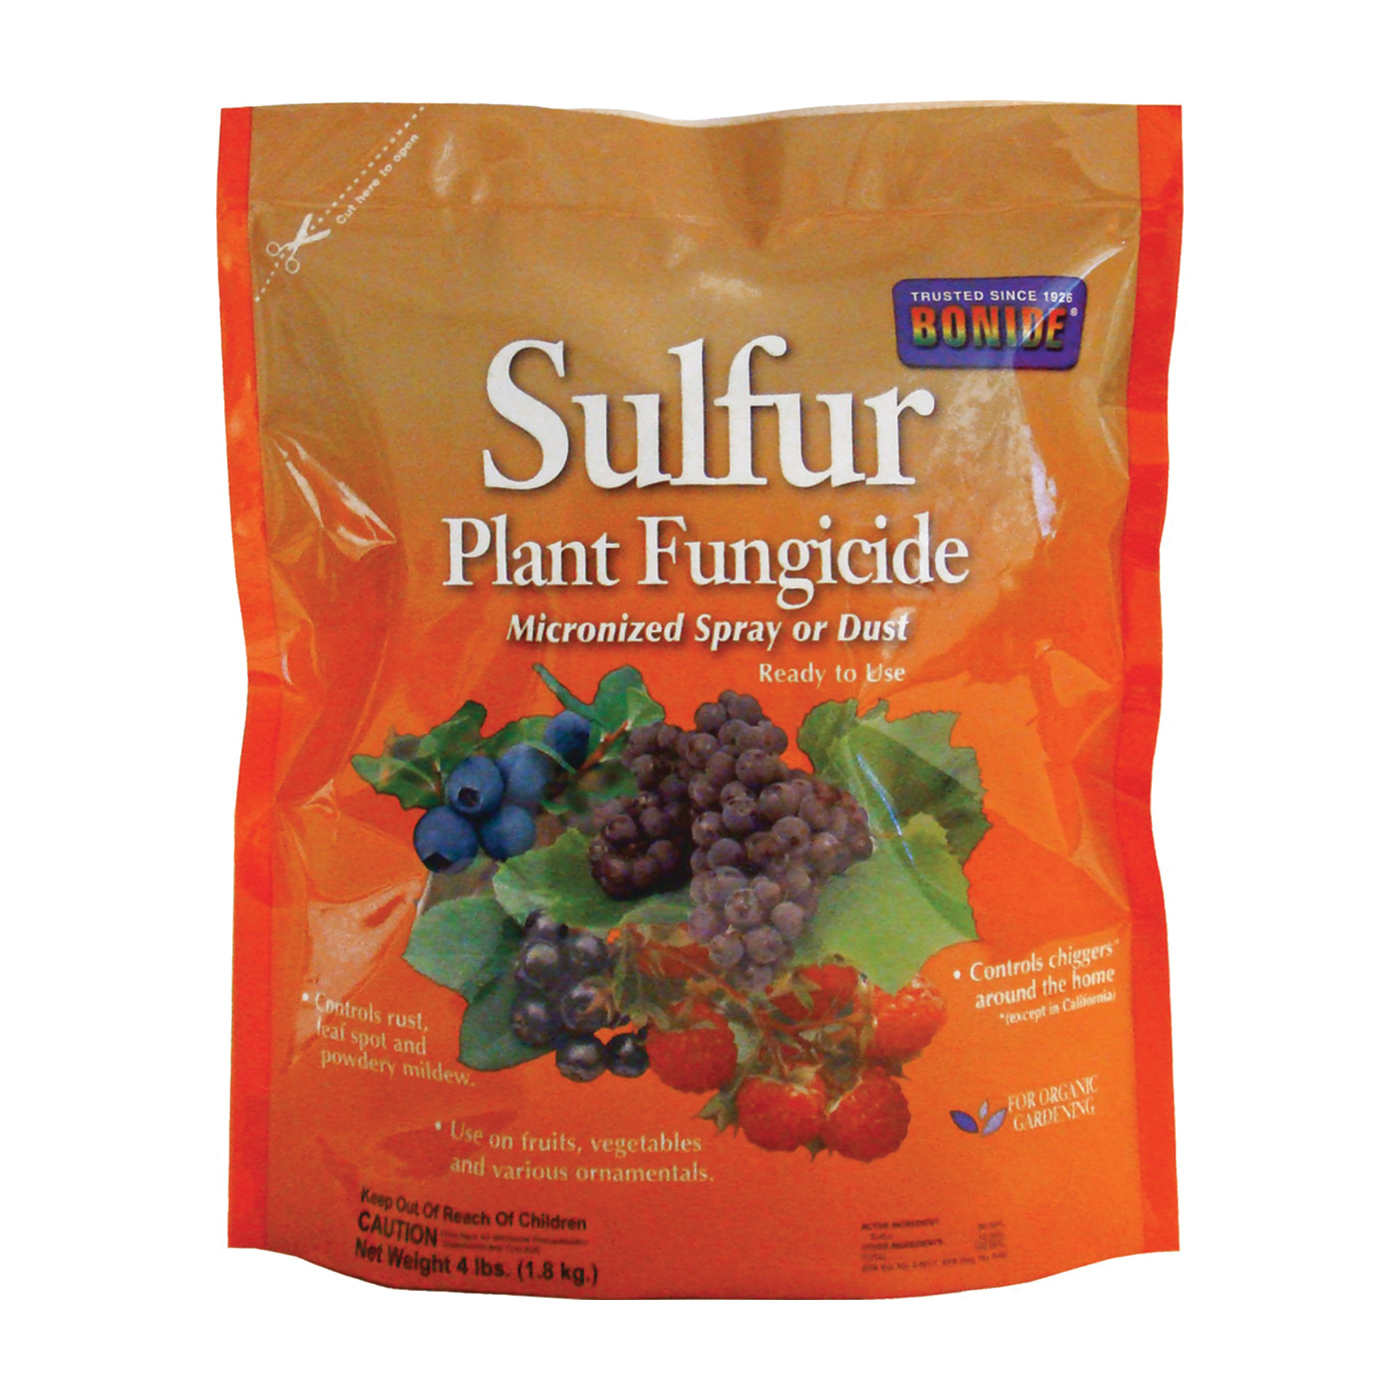 Picture of Bonide 142 Plant Fungicide, Powder, Rotten Egg, Pale Yellow, 4 lb Package, Bag